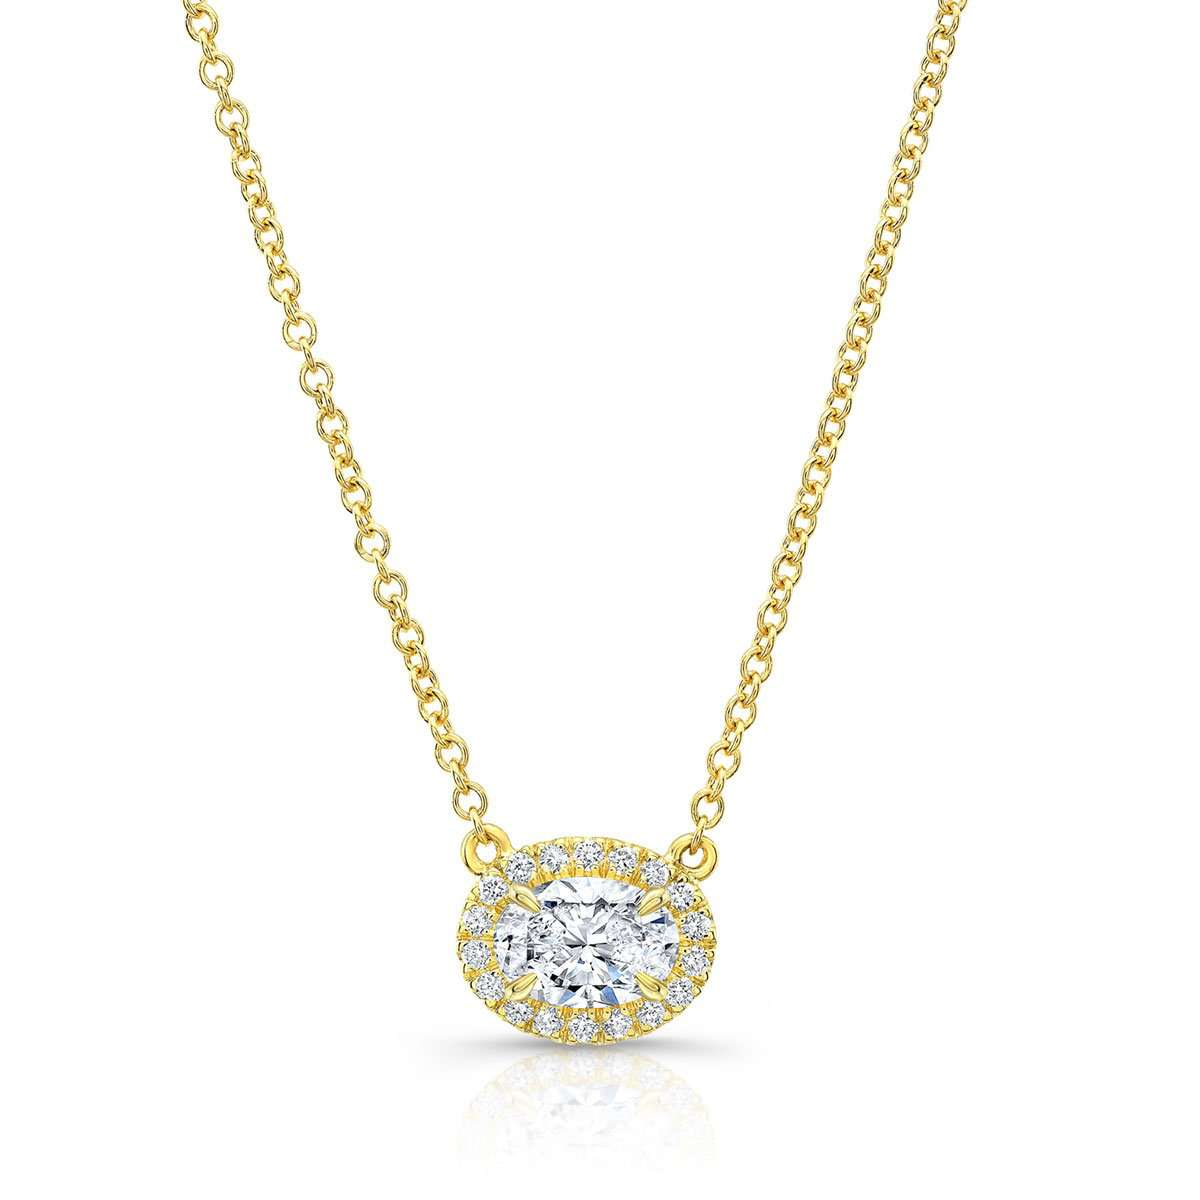 Norman Silverman Oval cut diamond Necklace with Diamond Halo